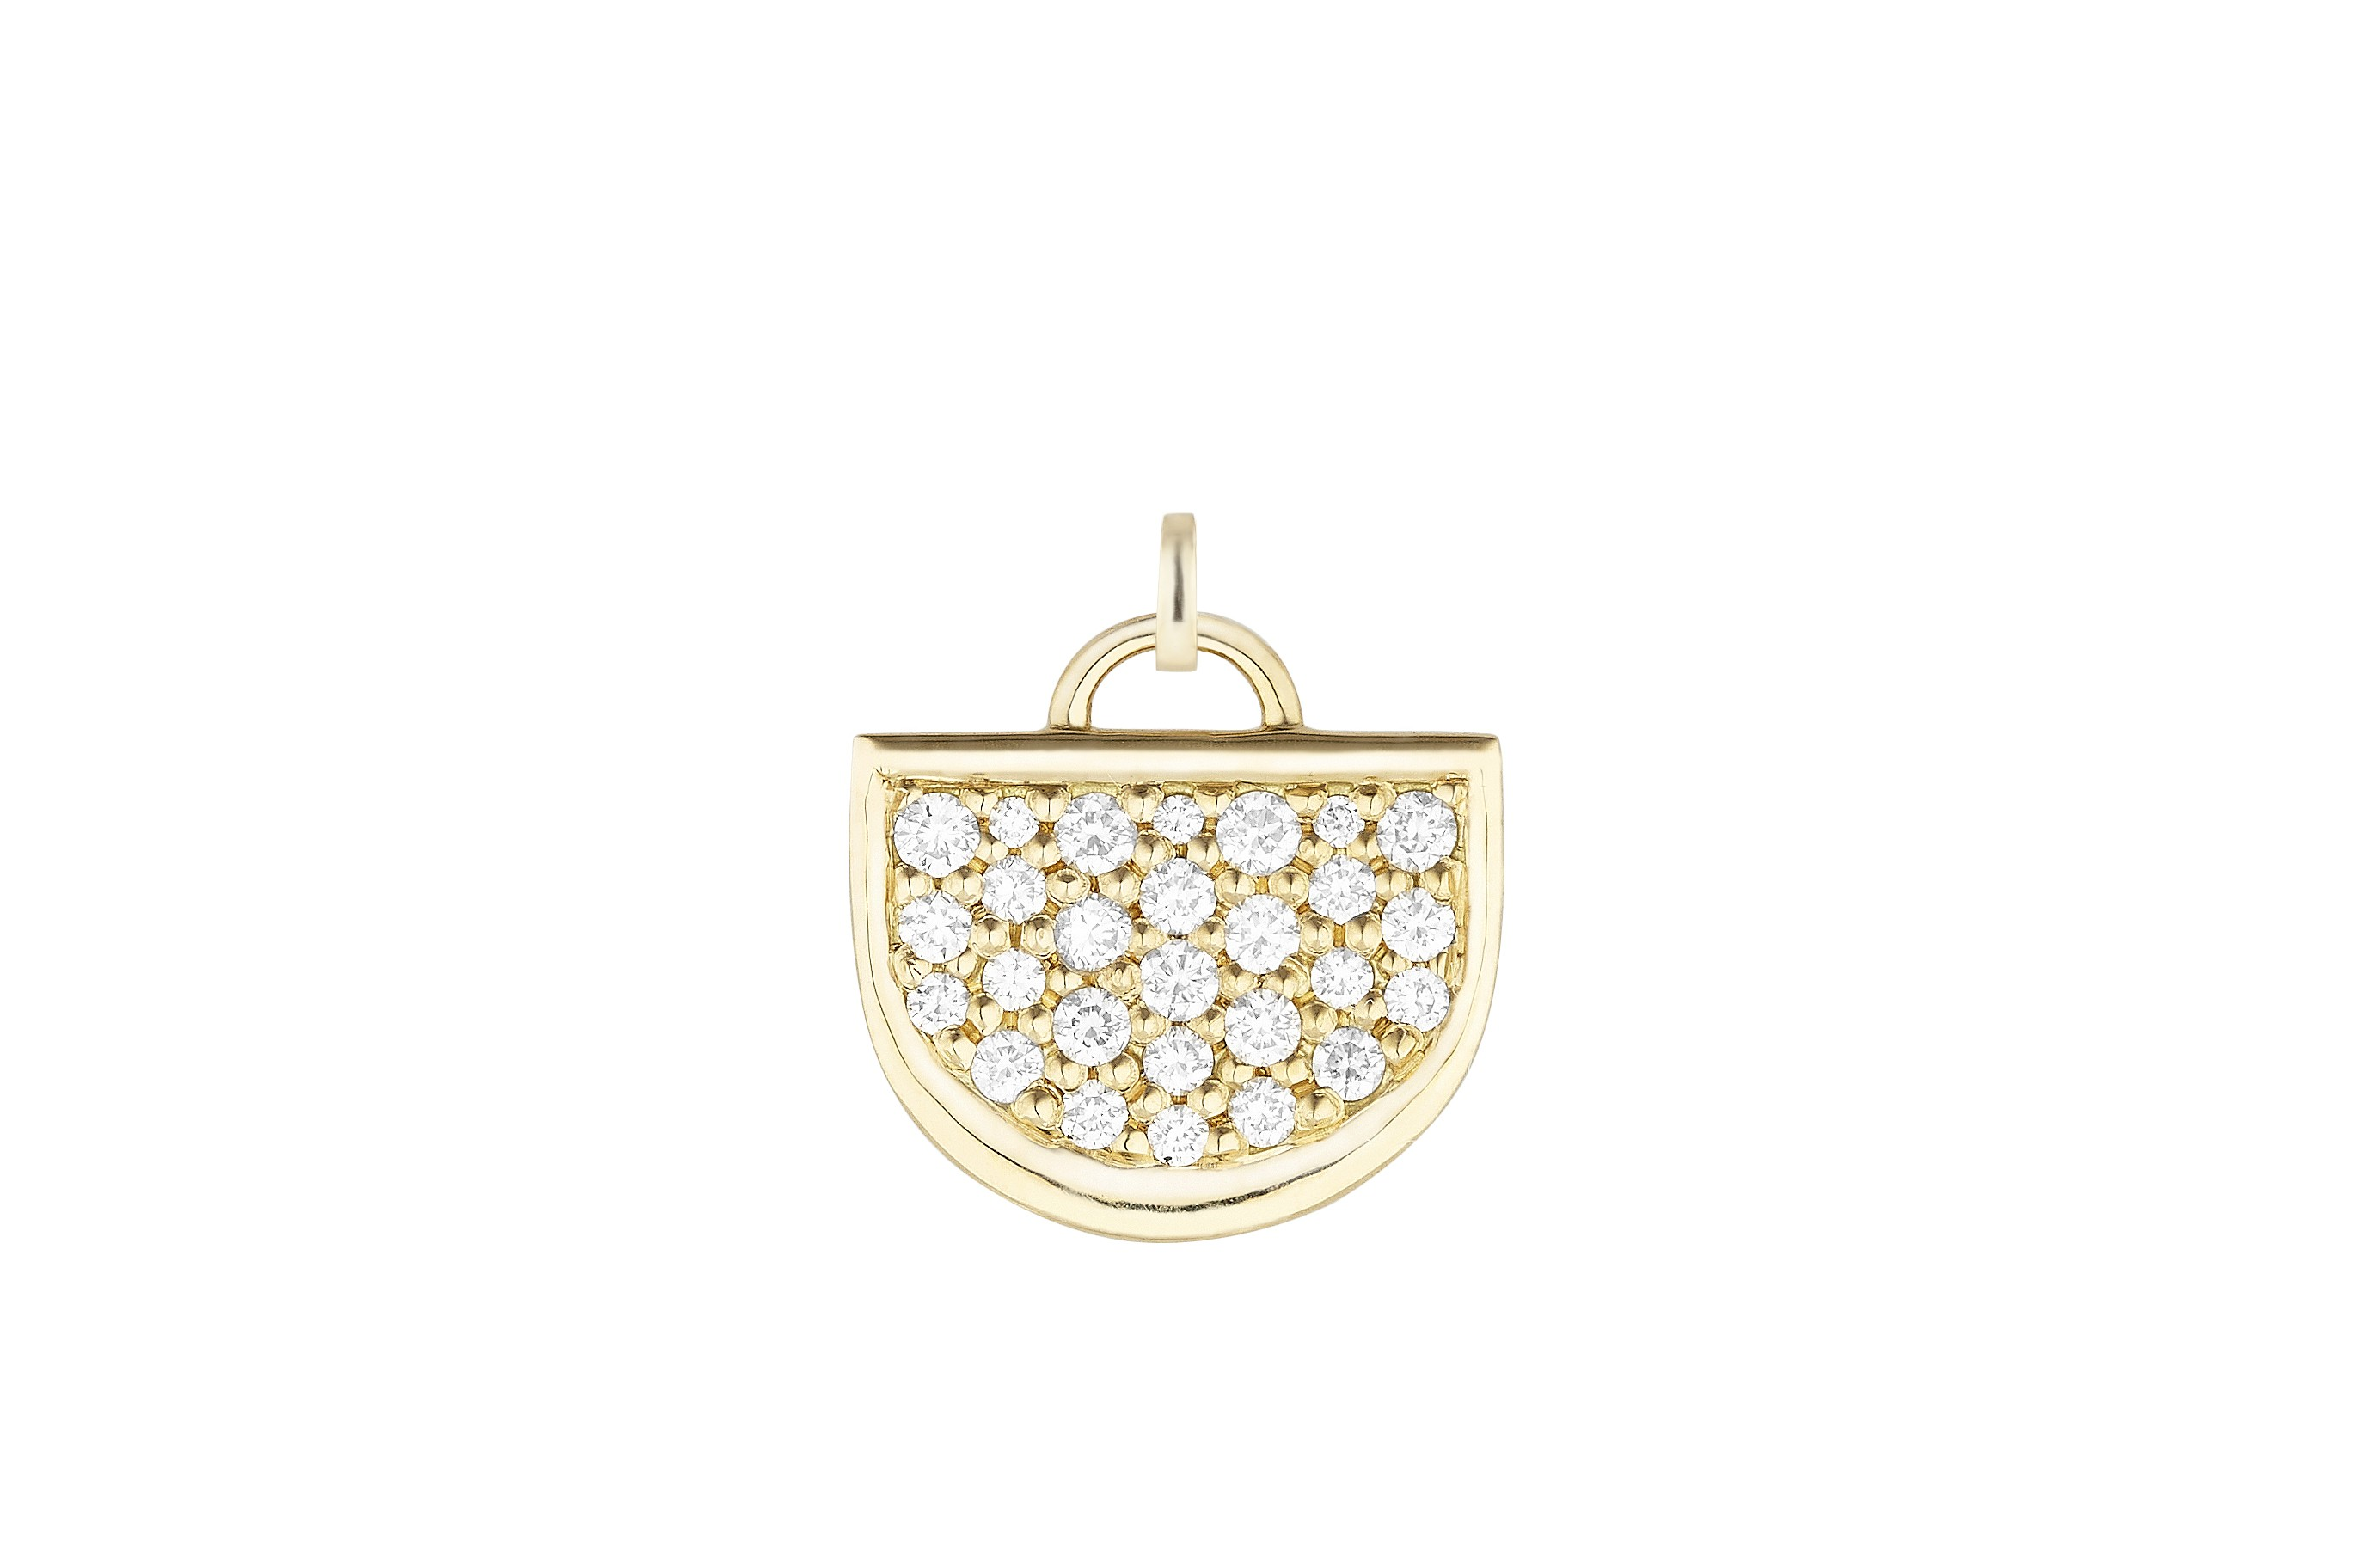 18K Yellow Gold Monogram Single D Charm with Lab Created Diamond Pave w/Removable Bail